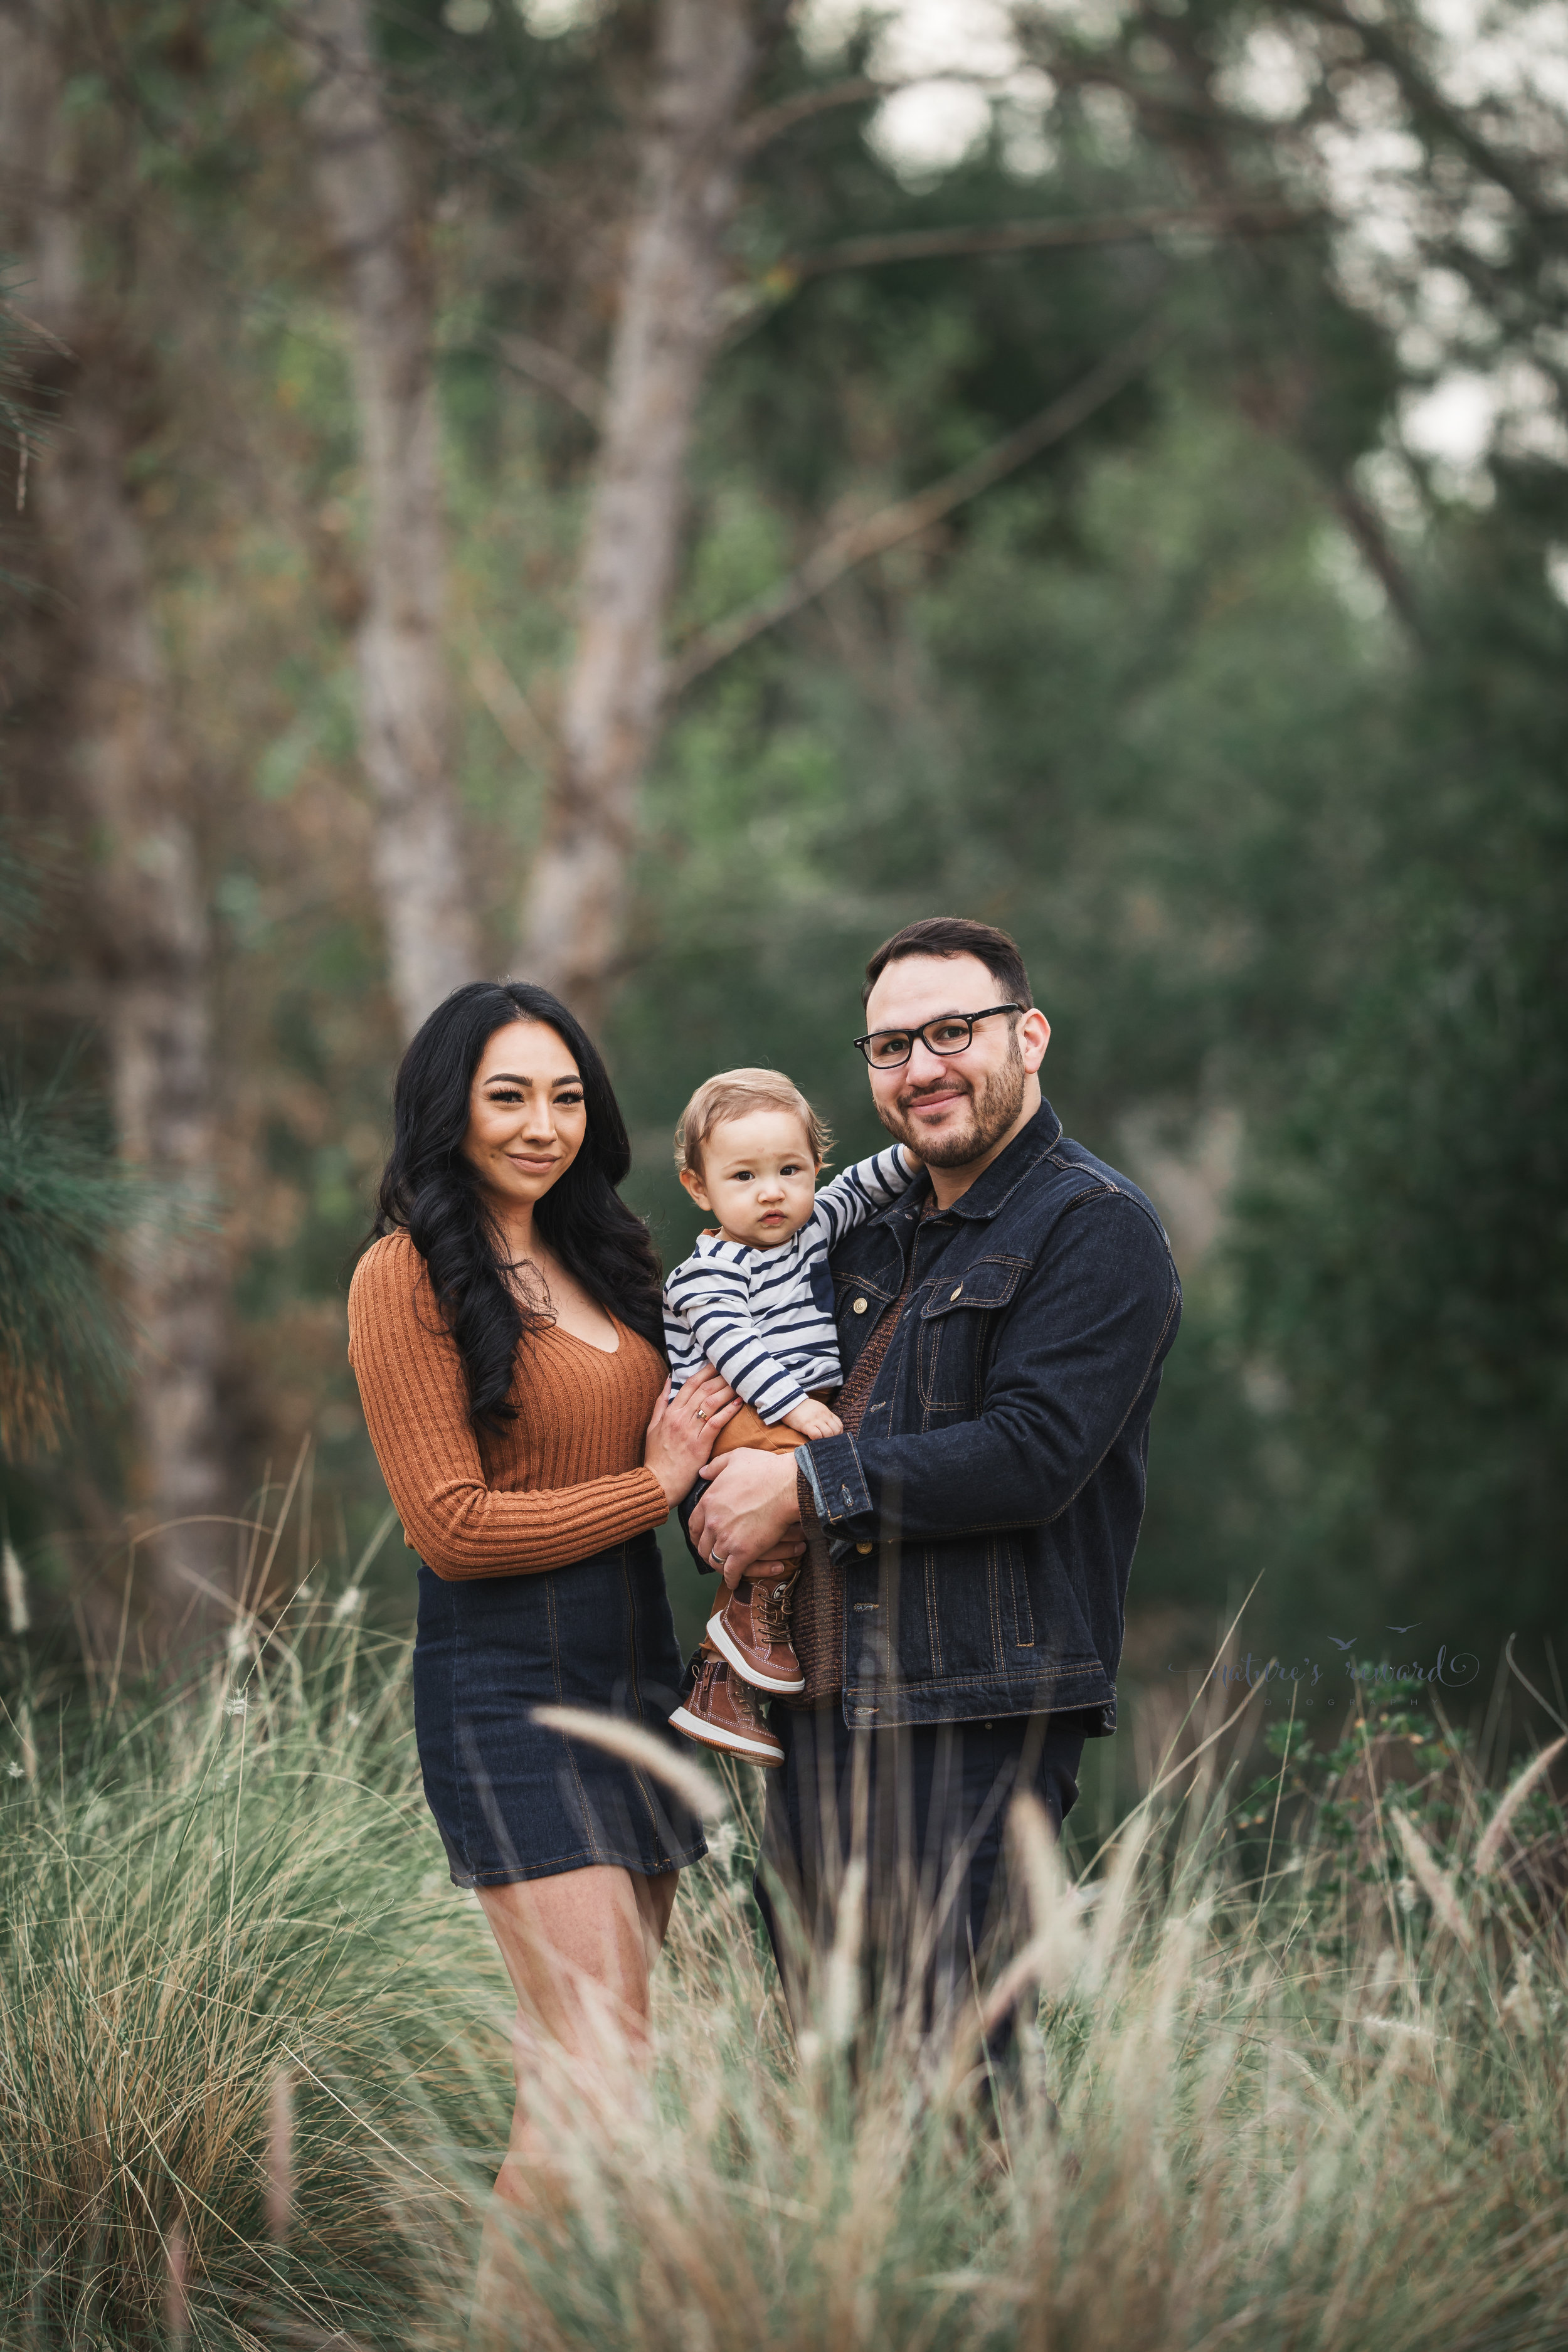 Baby boy in tans and blues with his mother and father in a portrait by Nature's reward Photography